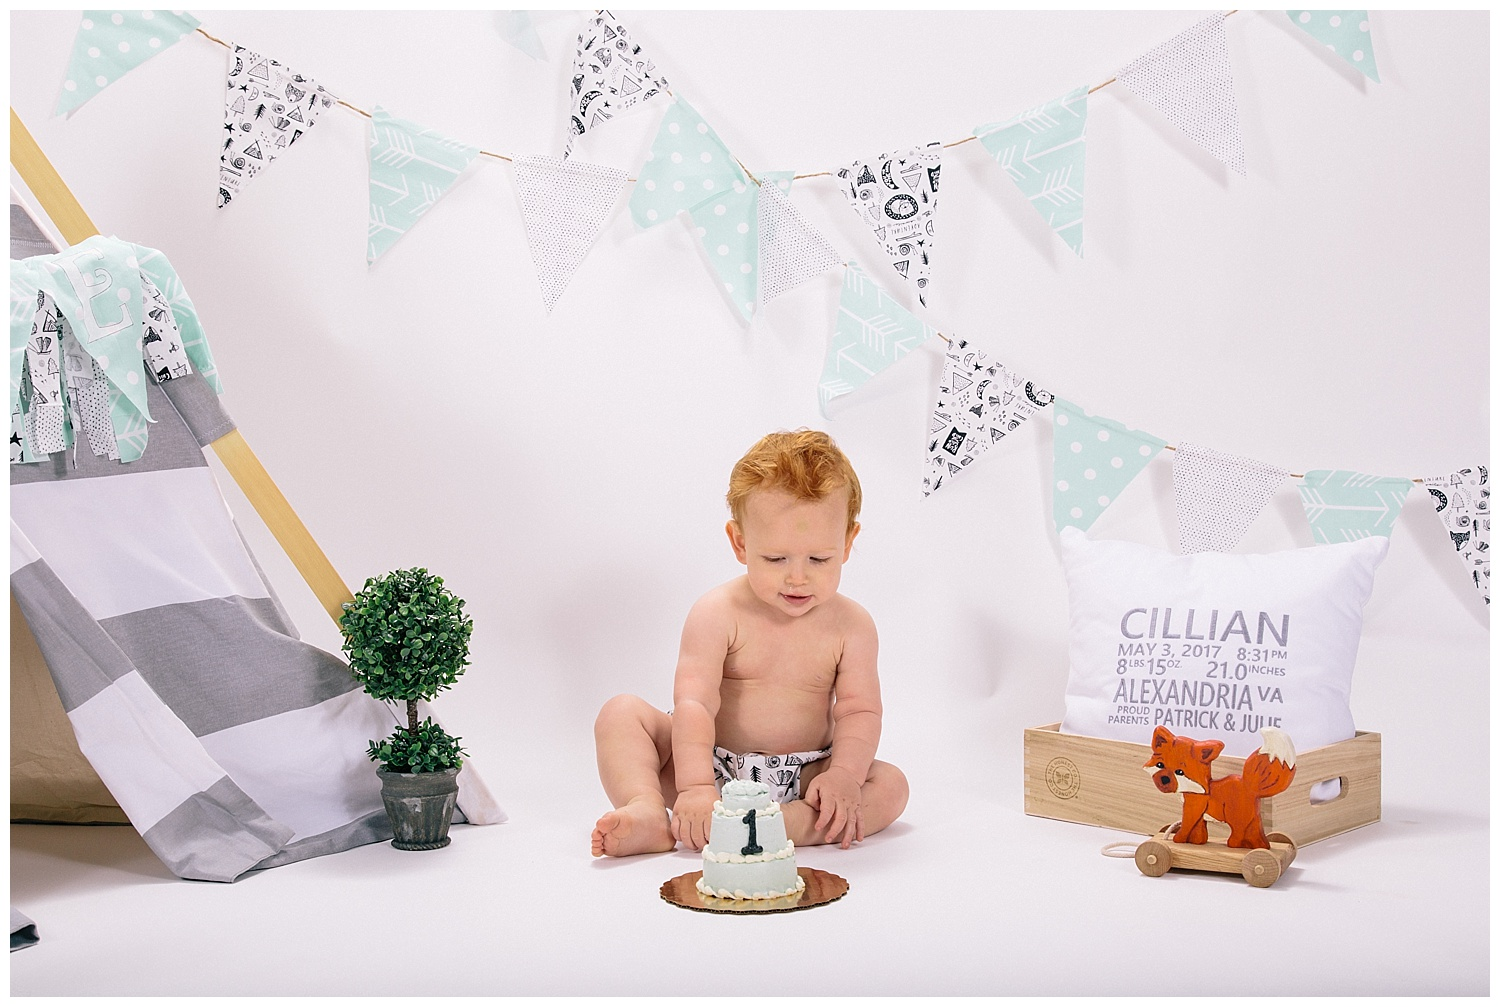 emily-belson-photography-one-year-cillian-10.jpg